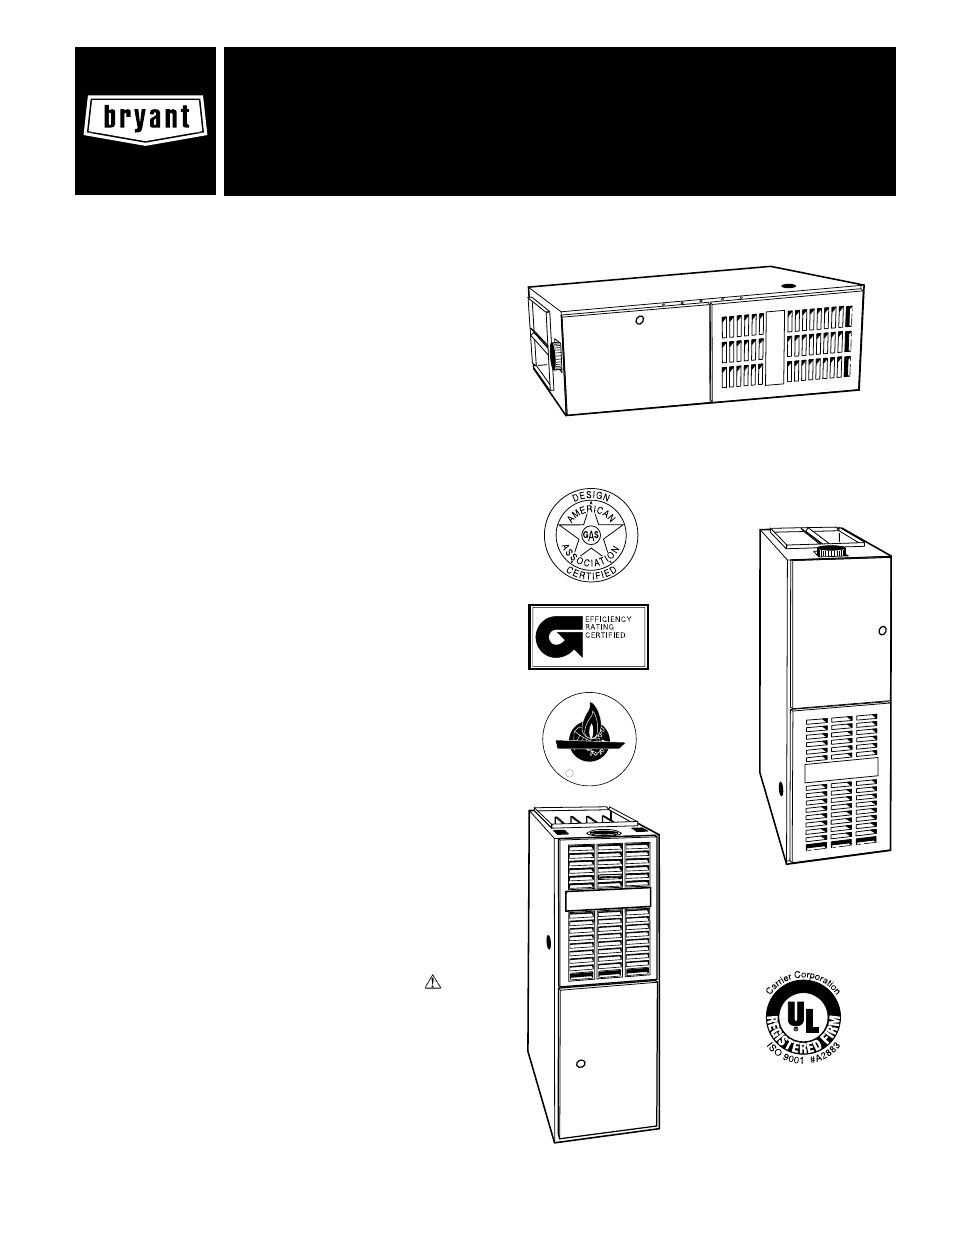 Bryant 395cav User Manual